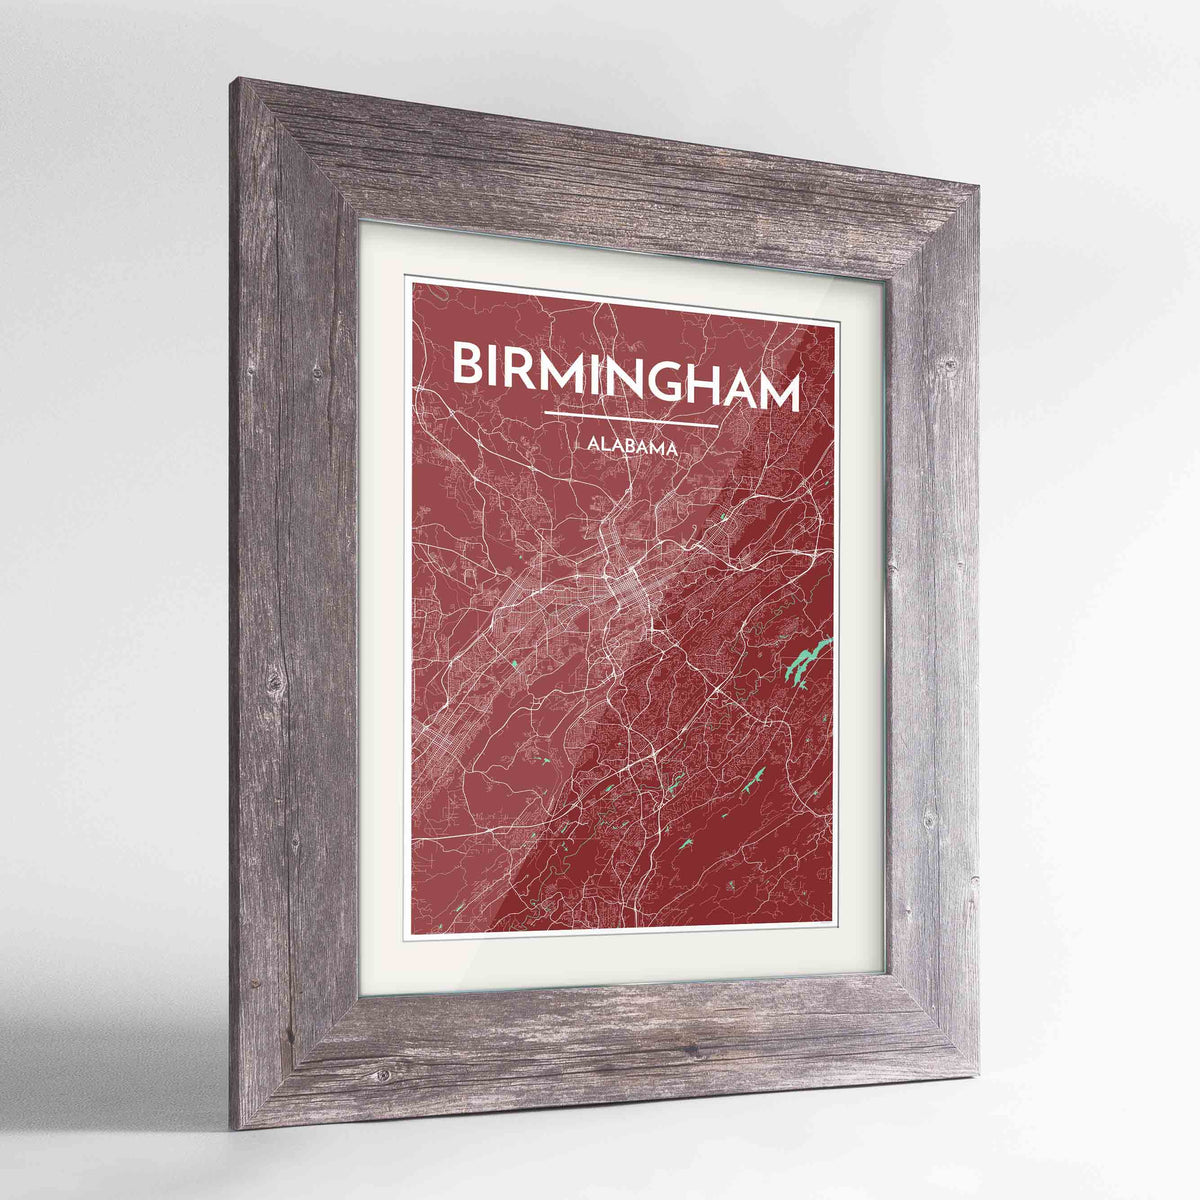 "Framed Birmingham - Alabama Map Art Print 24x36"" Western Grey frame Point Two Design Group"